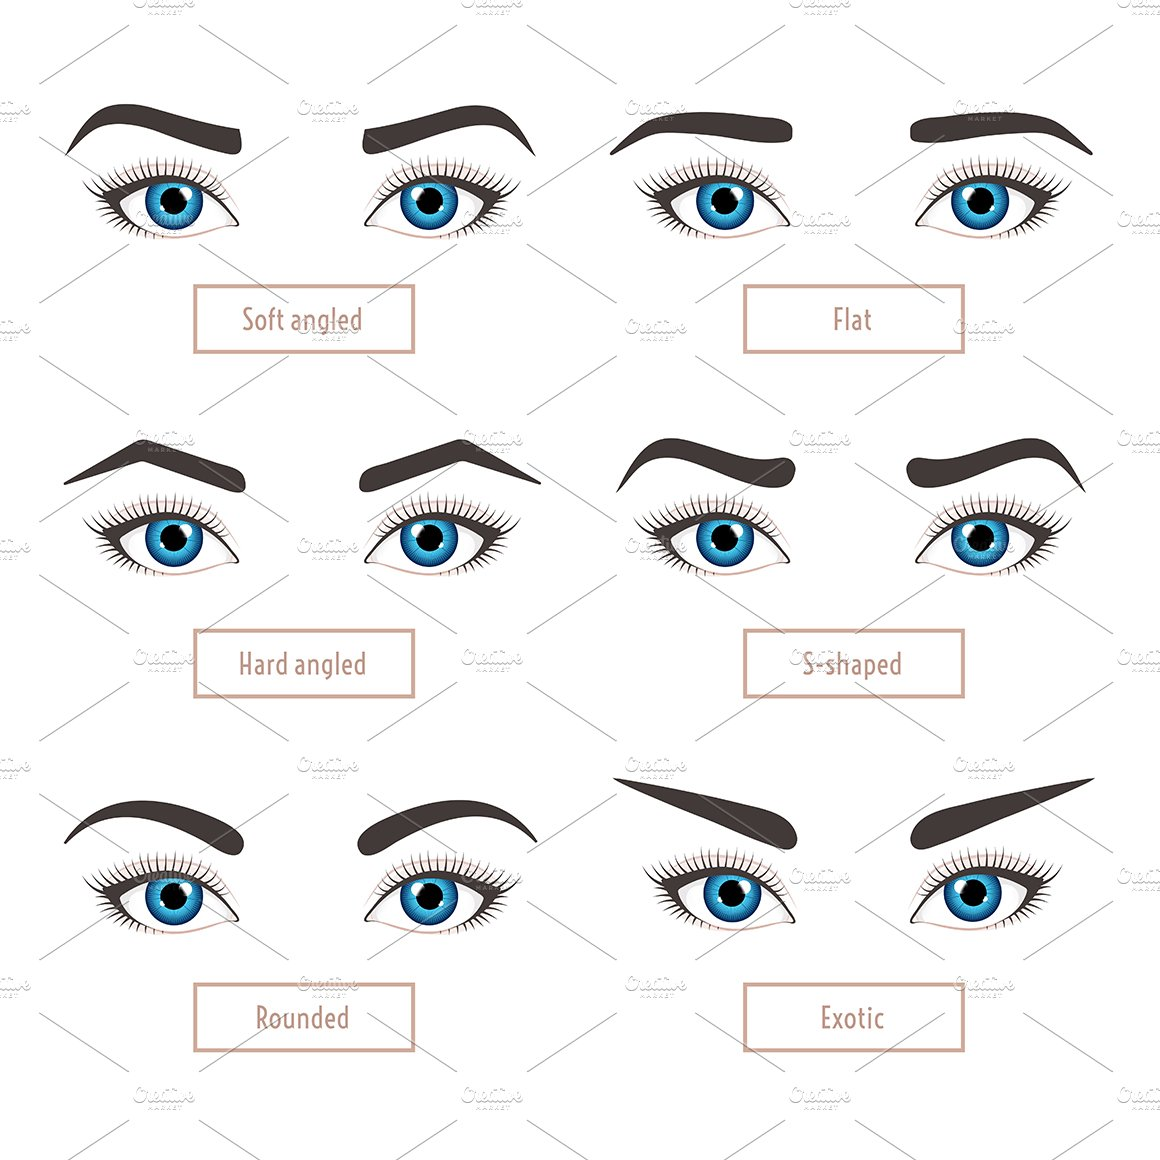 1051598 6 Basic Eyebrow Shapes. Captions on Basic Shape Page